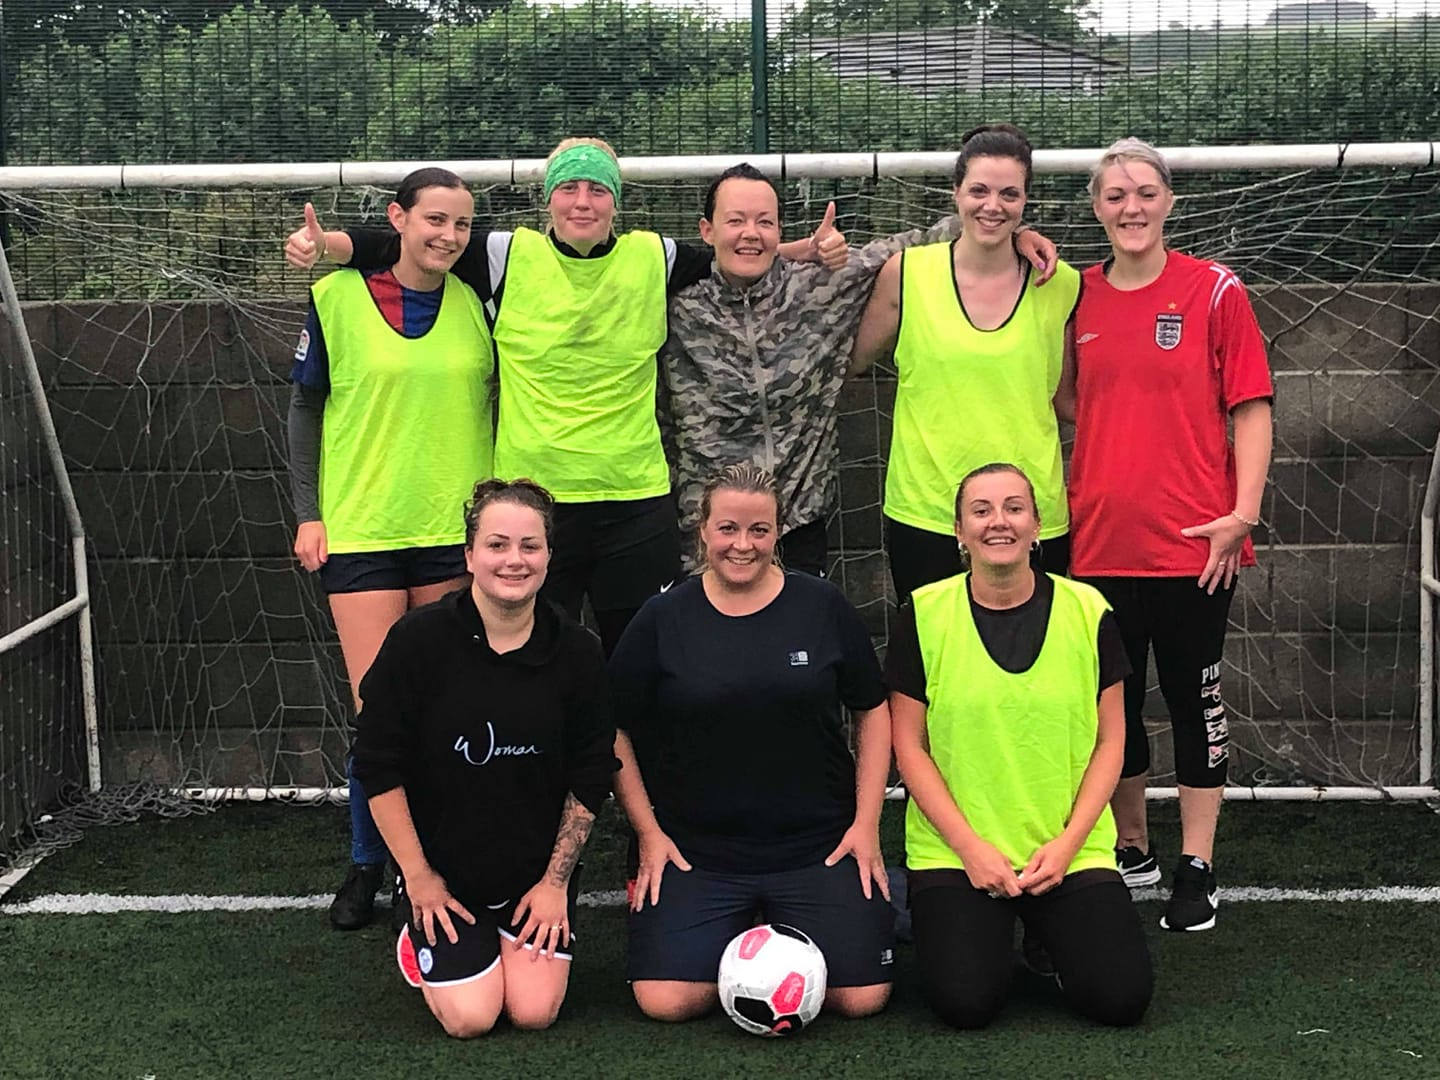 PCFC's Womens Kick-About Football Kicks Off - On a very rainy afternoon 8 intrepid women joined our very first Football Kick-About. The interest in fthis un activity is enormous with over 40 women already in the Facebook group.Why not pop down to join in the fun and fitness through football? The Women's Kick-About is held every Sunday Afternoon 4pm £5 per session for all ages and abilities.Interested then click here for more details